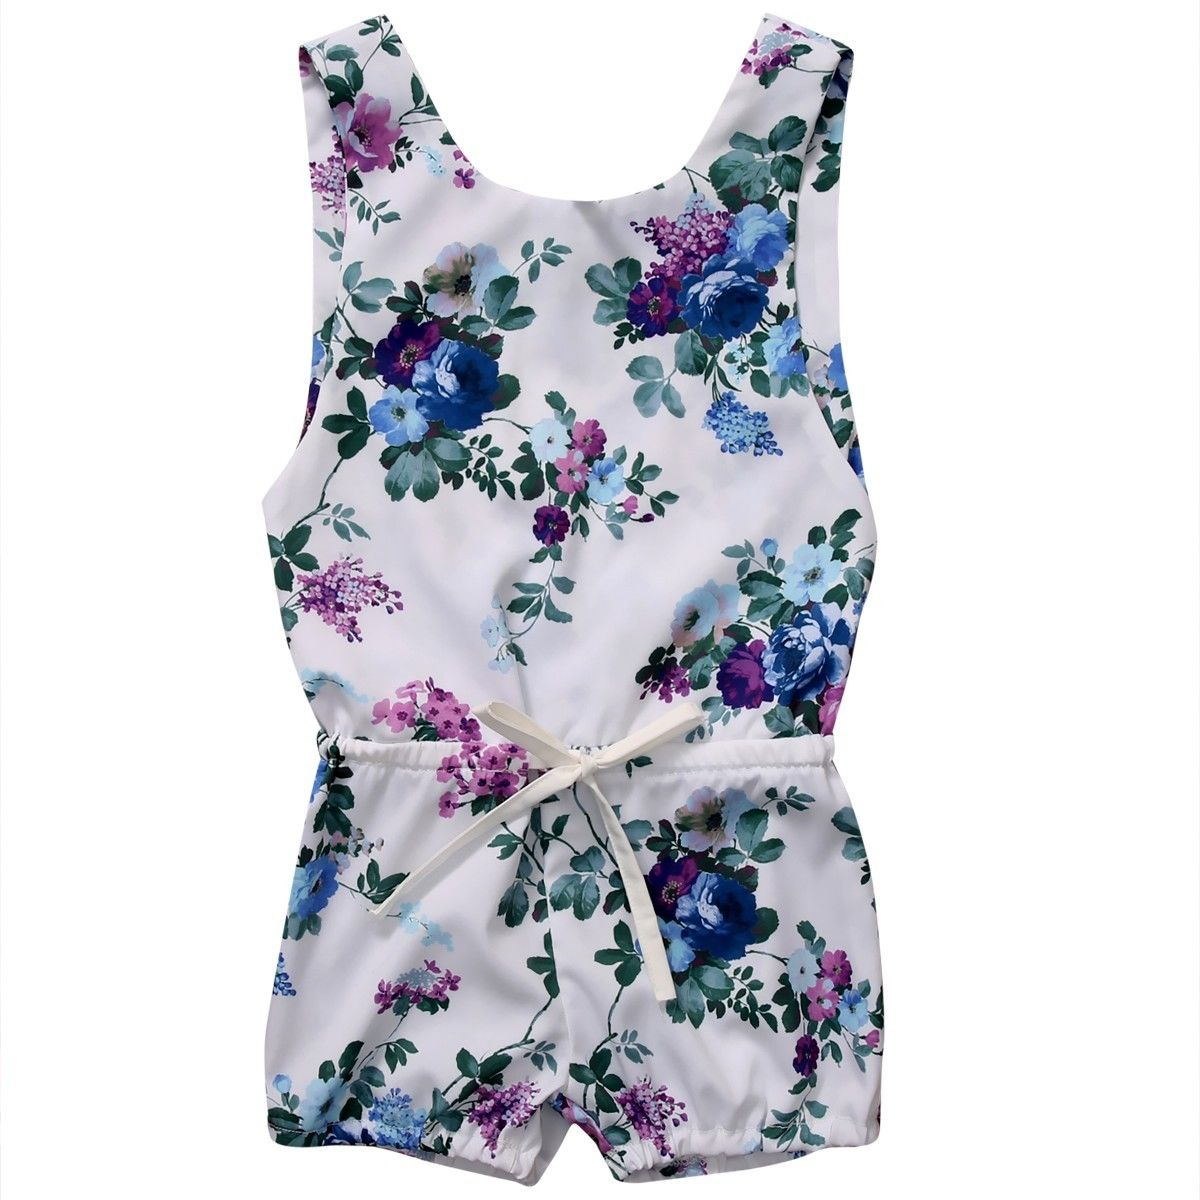 Newborn Kids Baby Girl Sleeveless Floral Romper Jumpsuit Cotton Outfits One-pieces Clothes